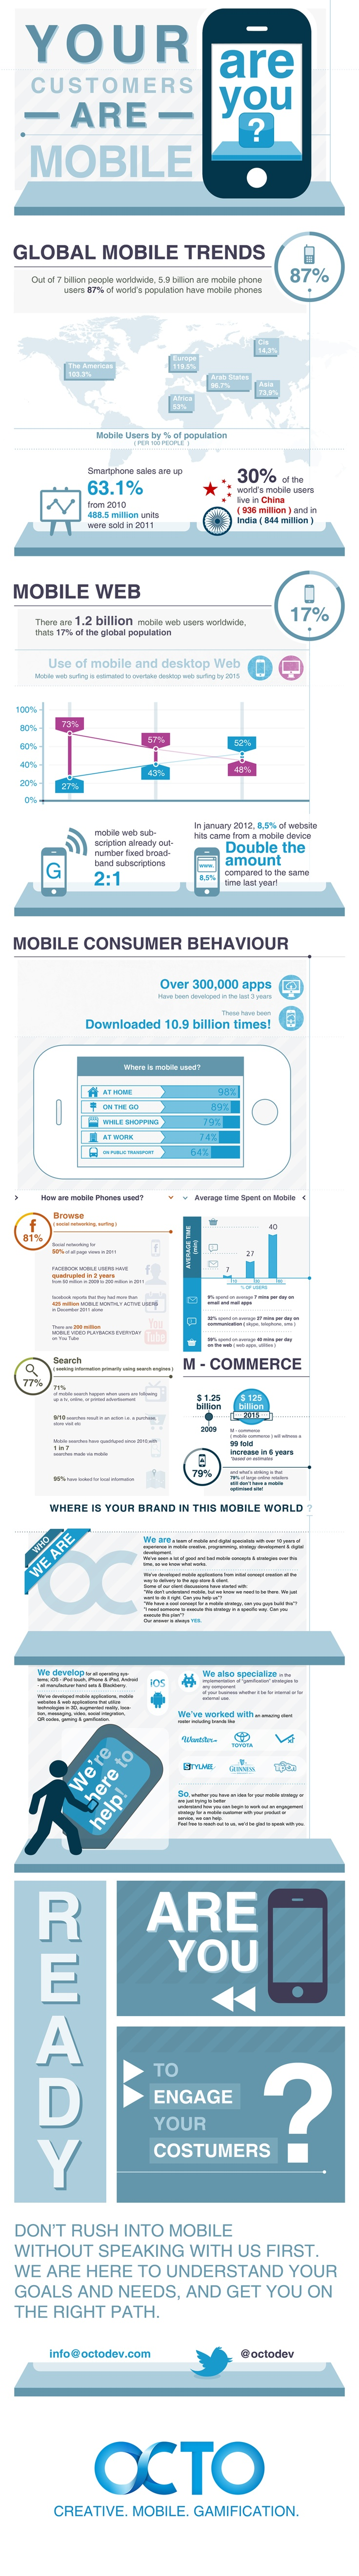 your customers are #mobile. Are you? #strategy #mobilemarketing #infographic